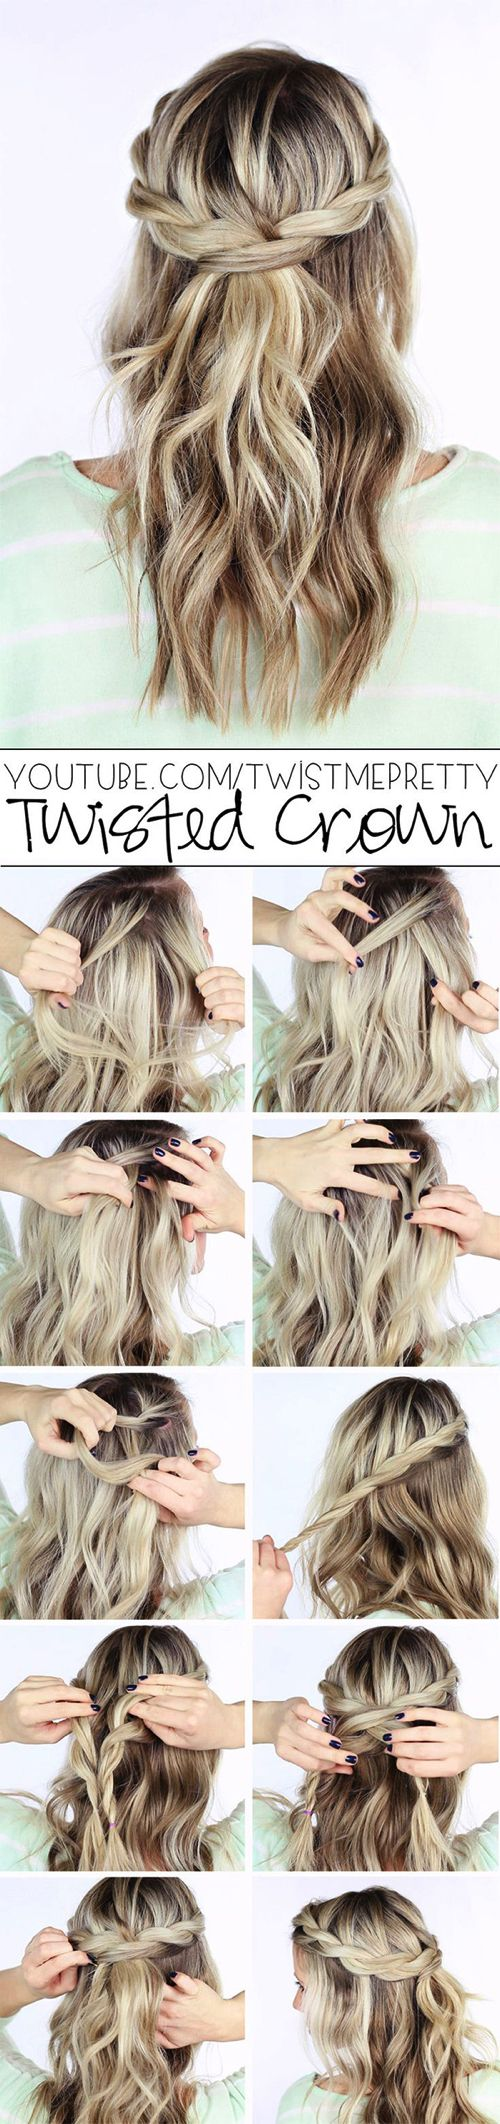 Upstyle twist hair blond style up colour crown princess pretty boho